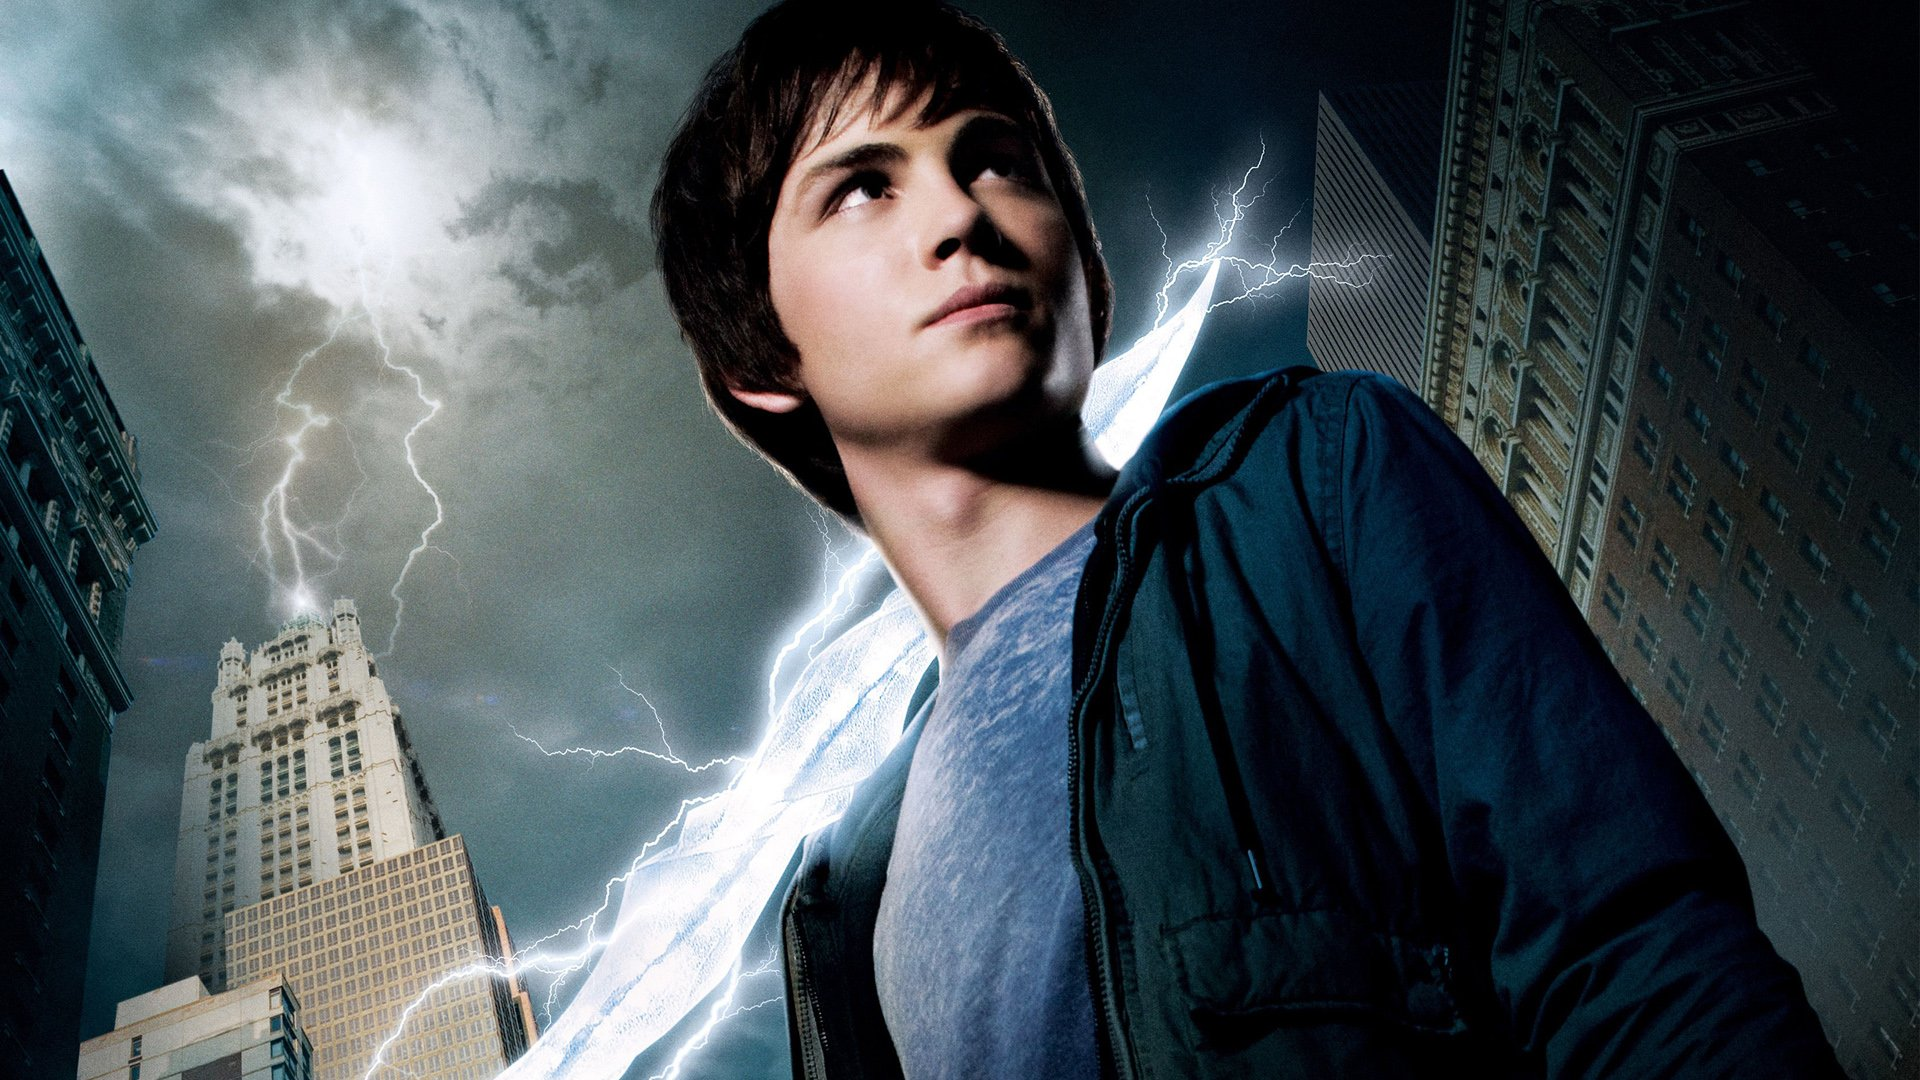 Percy Jackson The Olympians The Lightning Thief Hd Wallpaper Background Image 1920x1080 Id 809631 Wallpaper Abyss